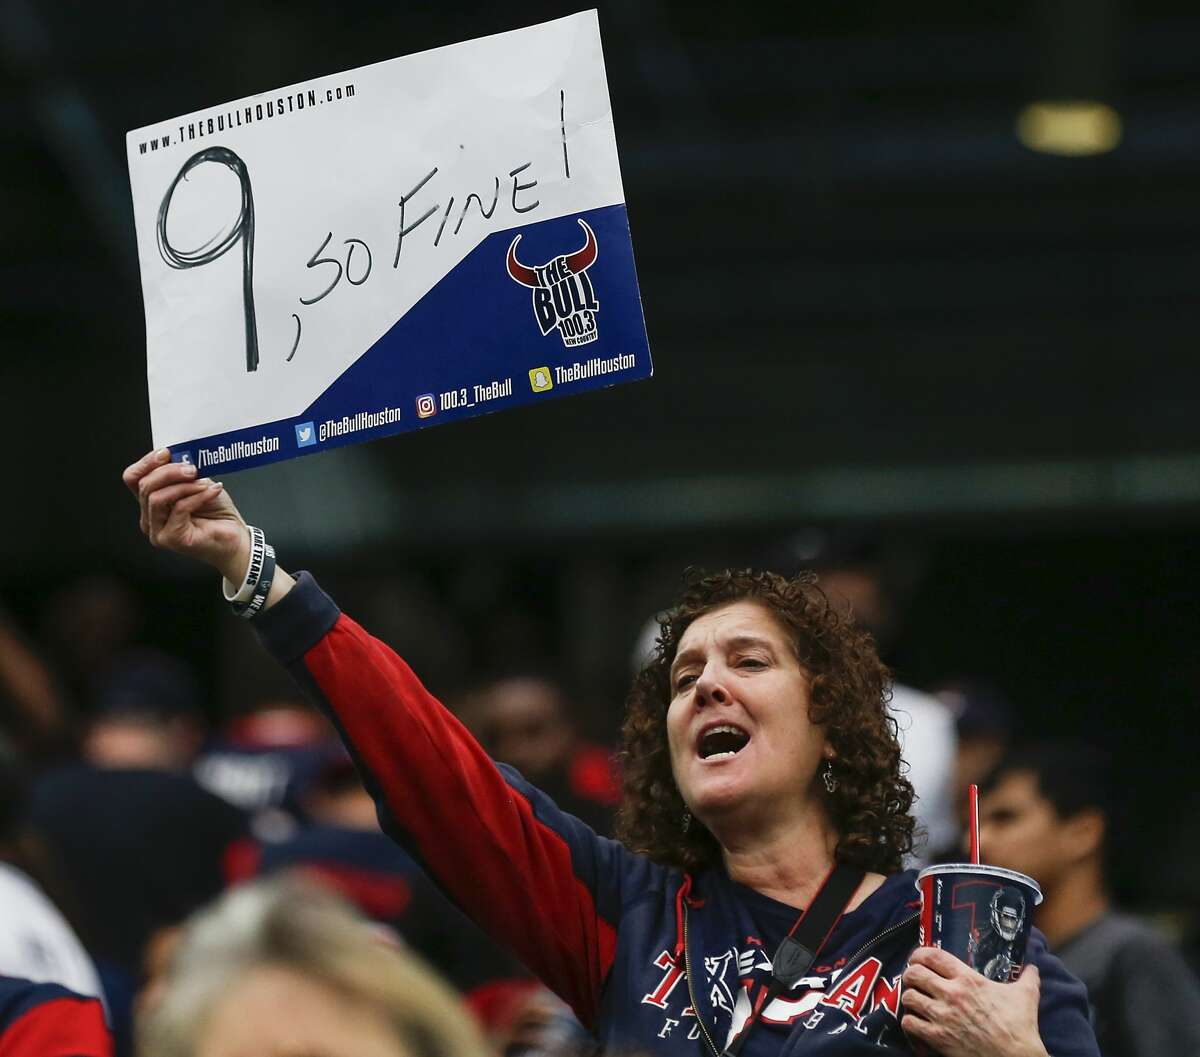 A Houston Texans fan holds up a sign signifying the Texans ninth consecutive win, a 29-13 win over the Cleveland Browns at NRG Stadium on Sunday, Dec. 2, 2018, in Houston.